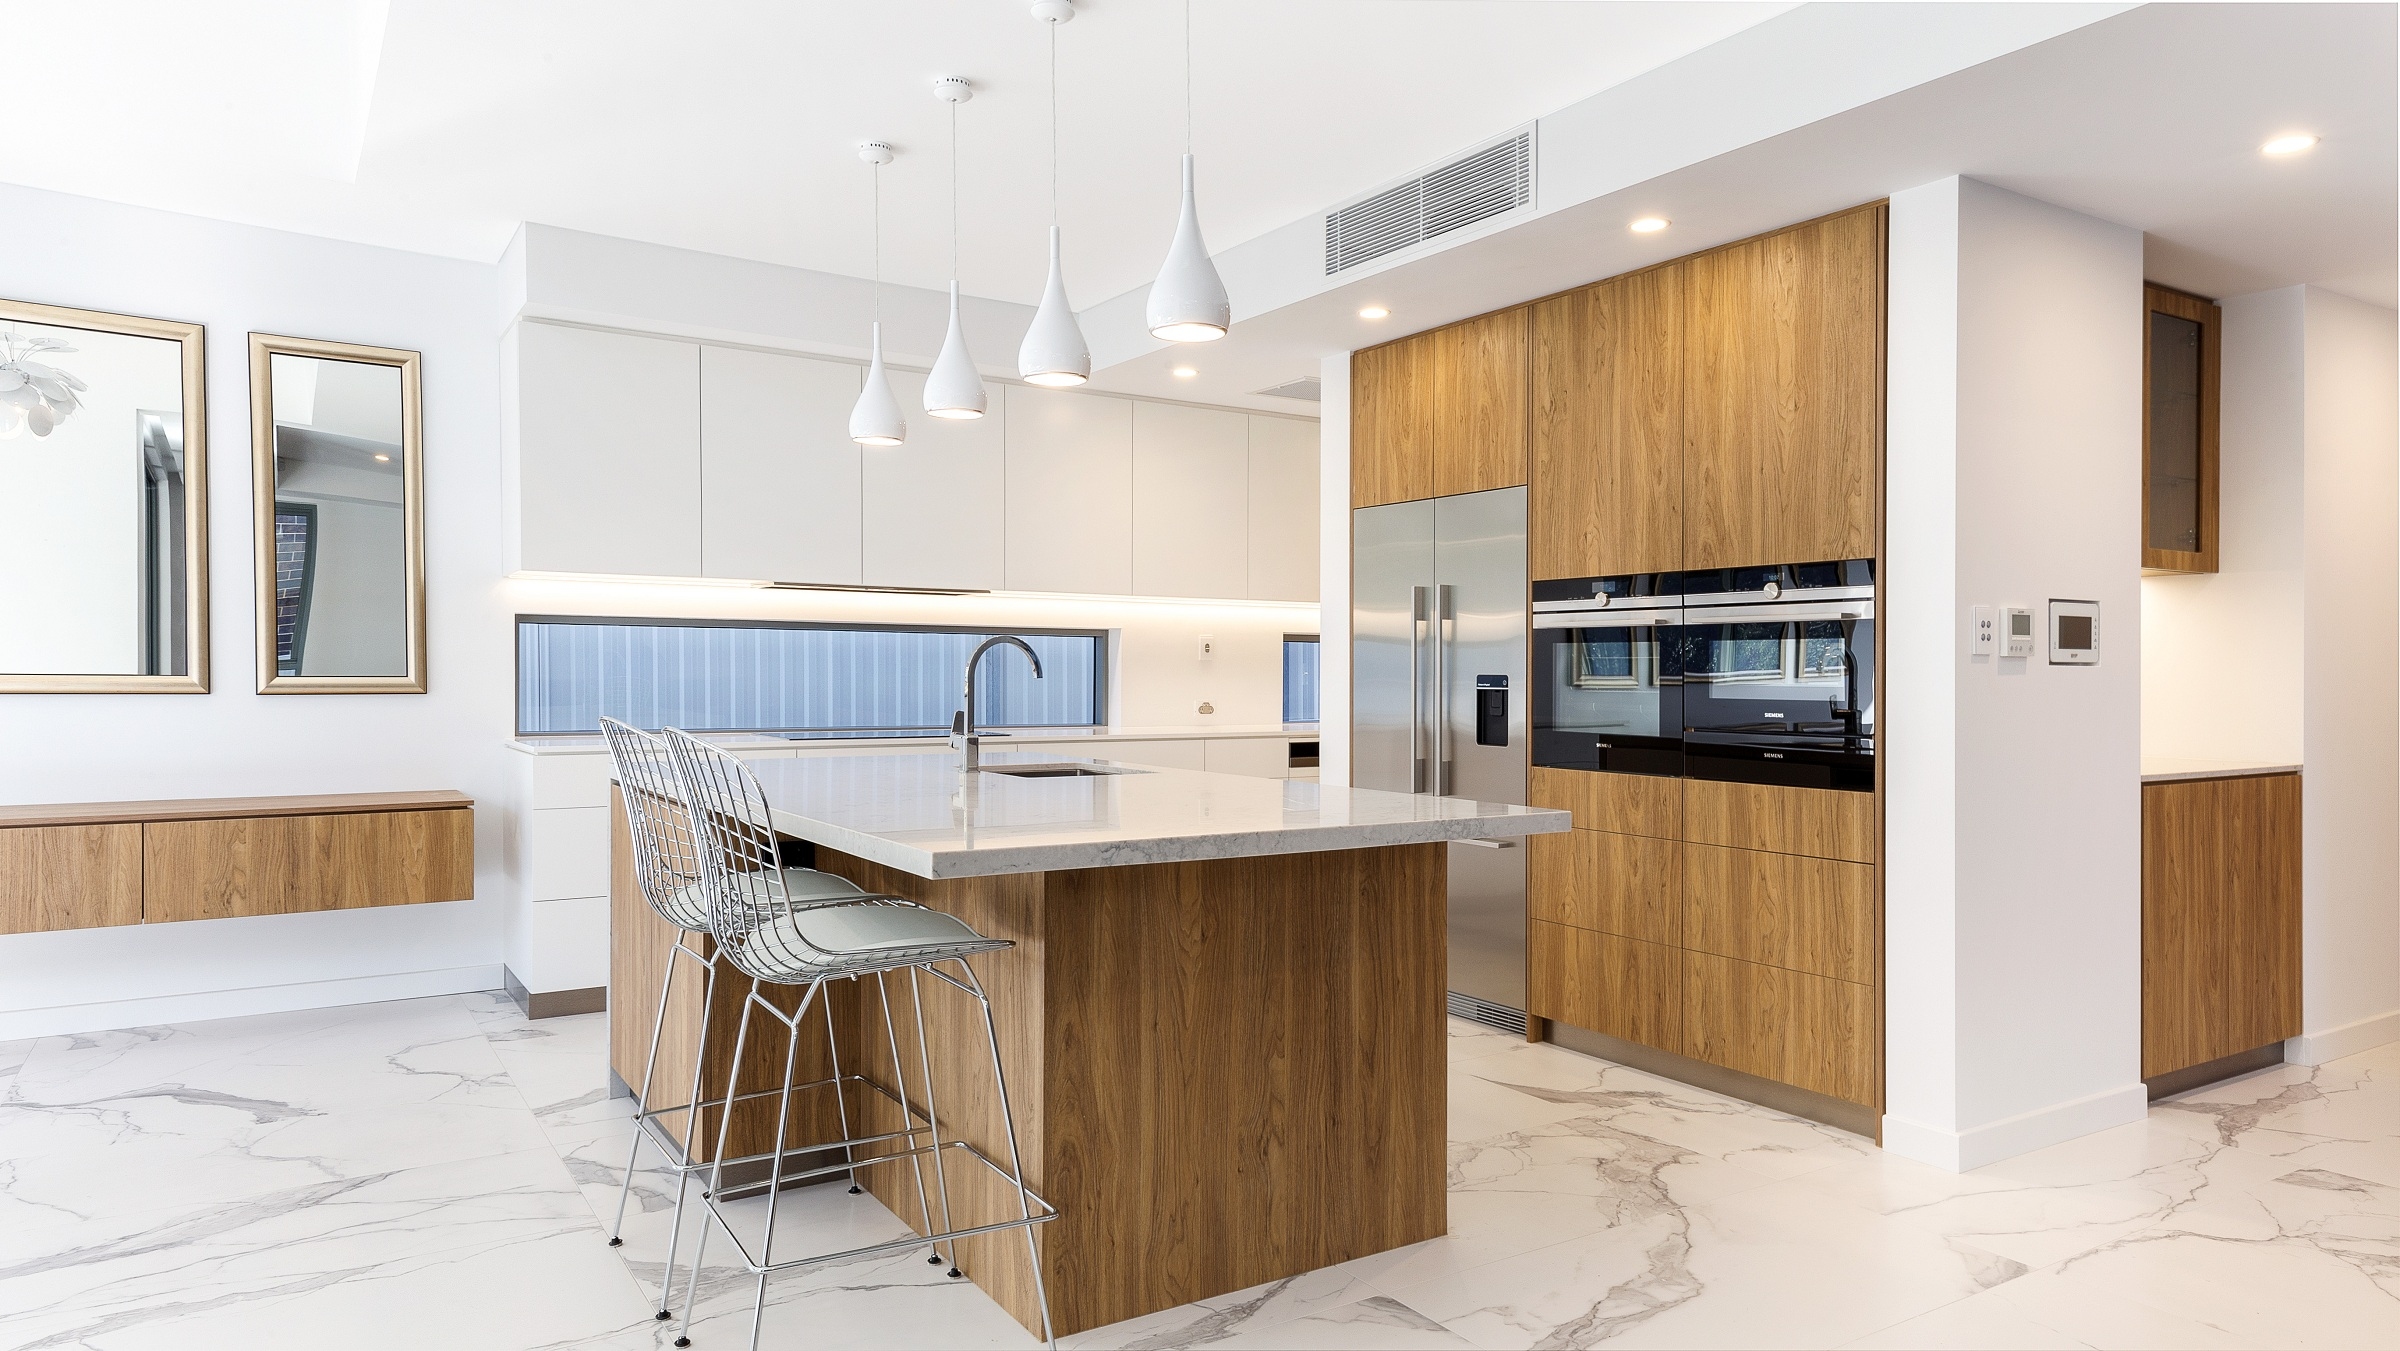 Oatley Kitchen, Polyurethane and Likewood finish with a Caesarstone Noble Grey benchtop